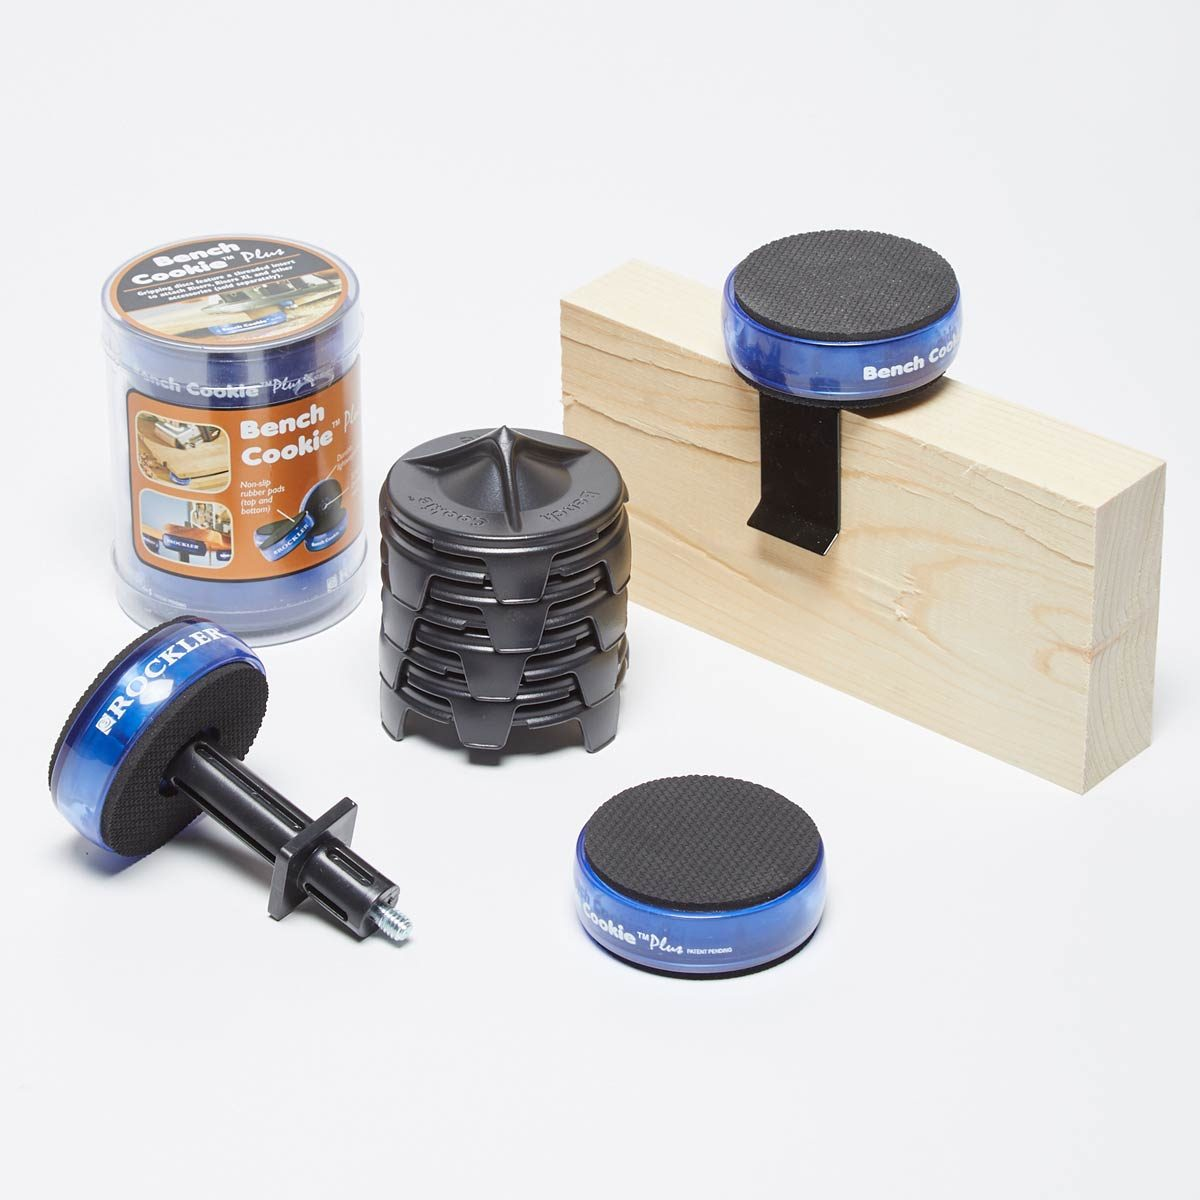 rockler bench cookies and accessories